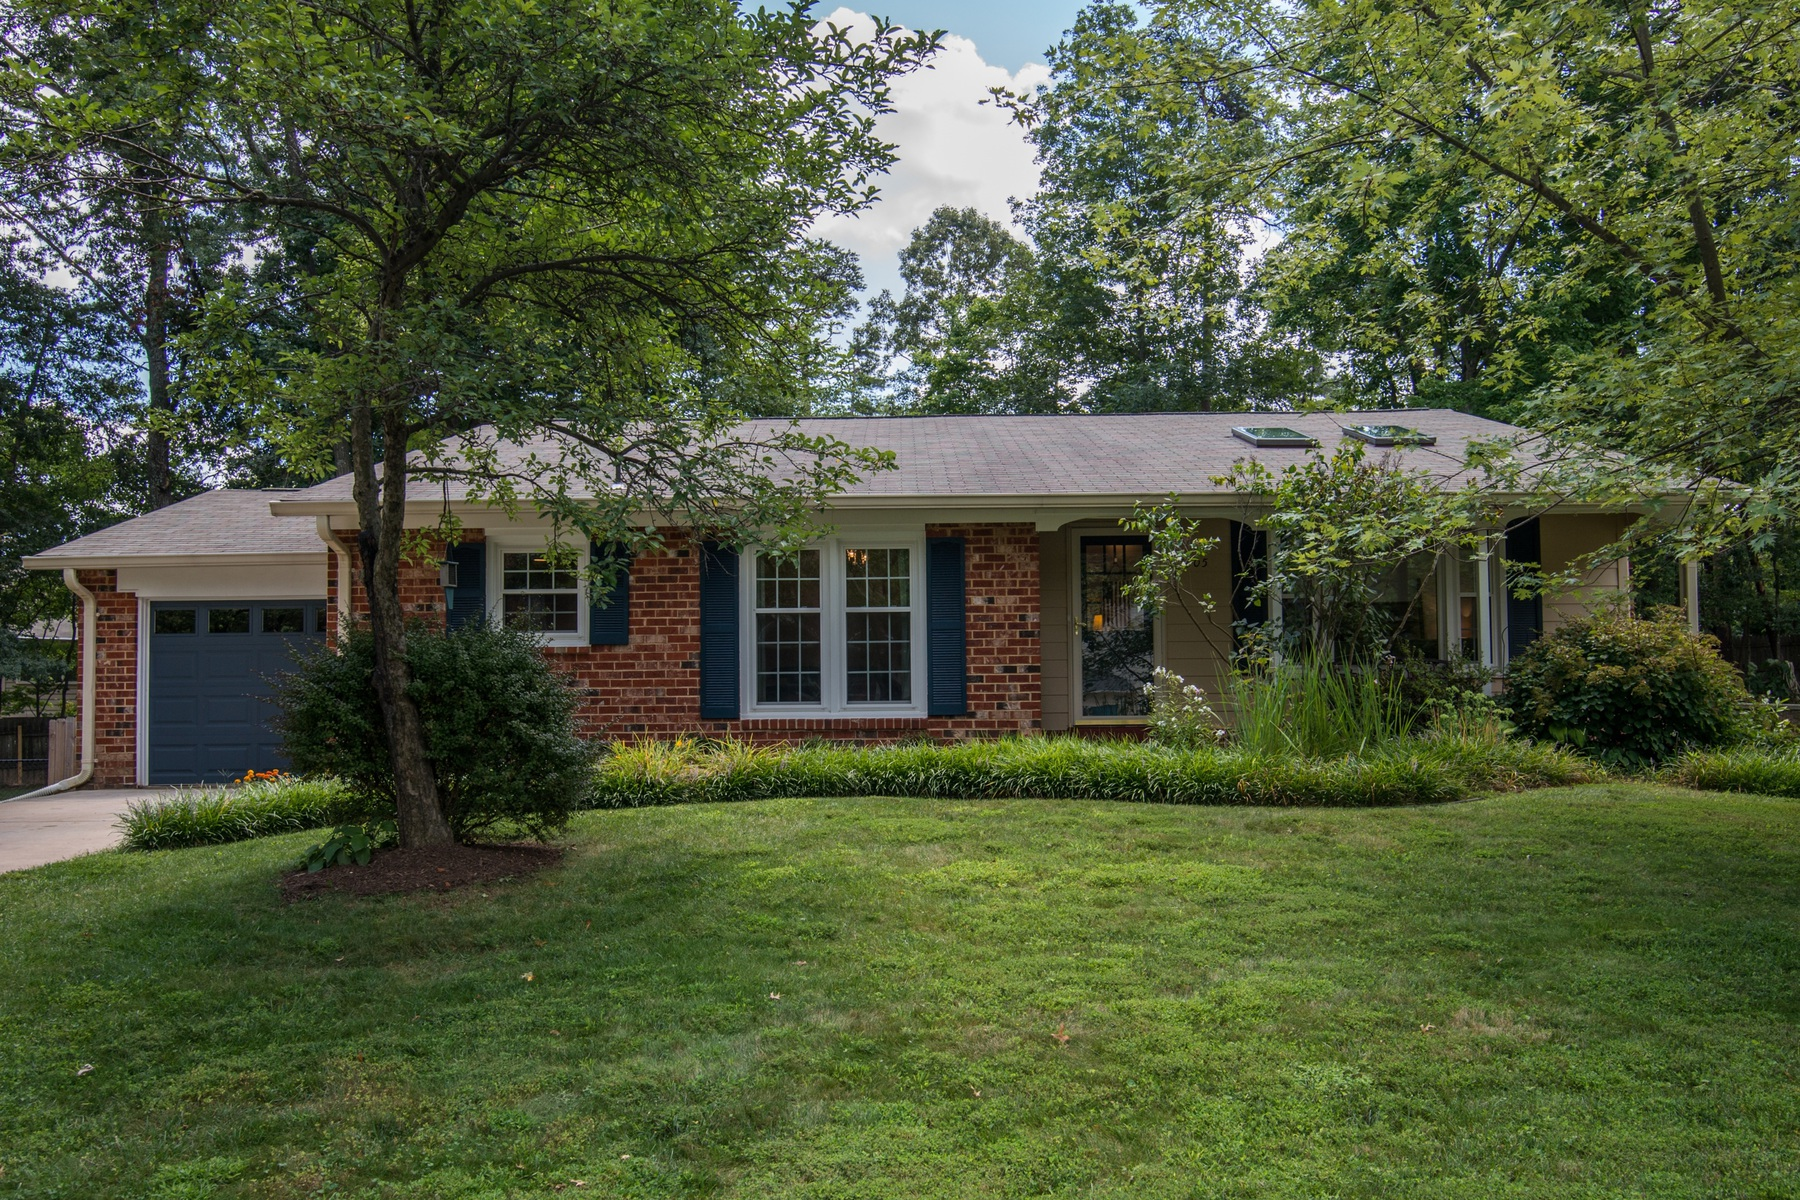 Single Family Home for Sale at Kings Park West 5305 Kaywood Ct Fairfax, Virginia 22032 United States